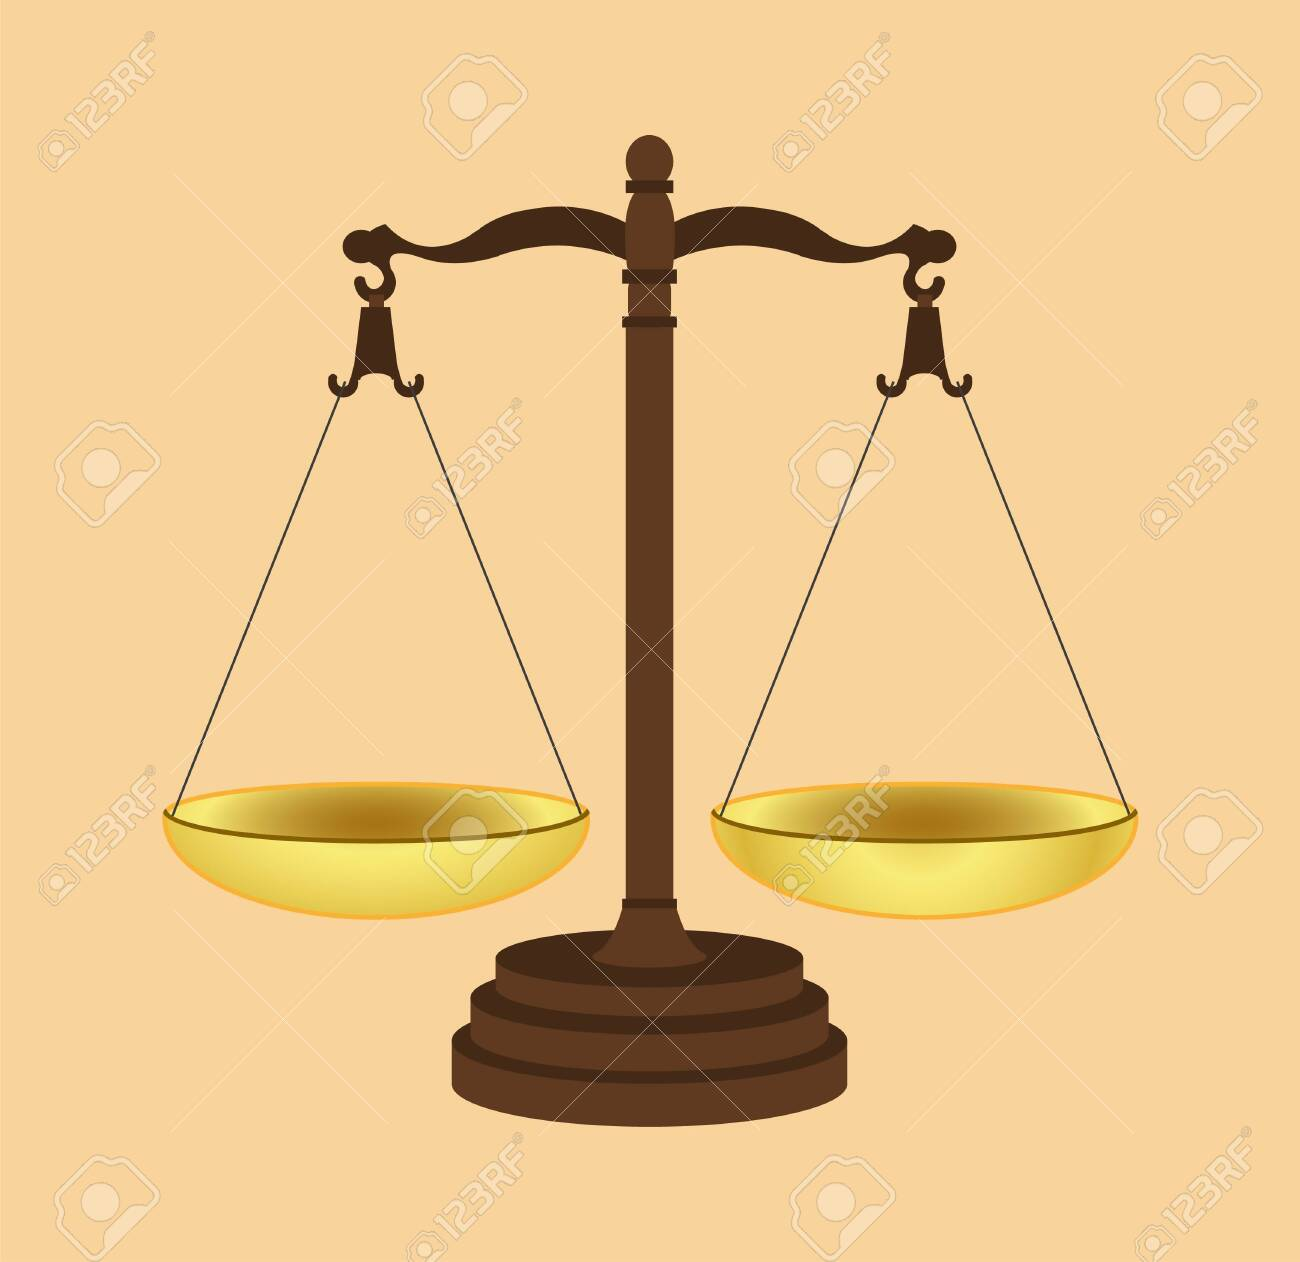 Symbol of justice. Icon of Law Scales Concept. Gold brass balance scale. Vector illustration EPS 10. - 146542253